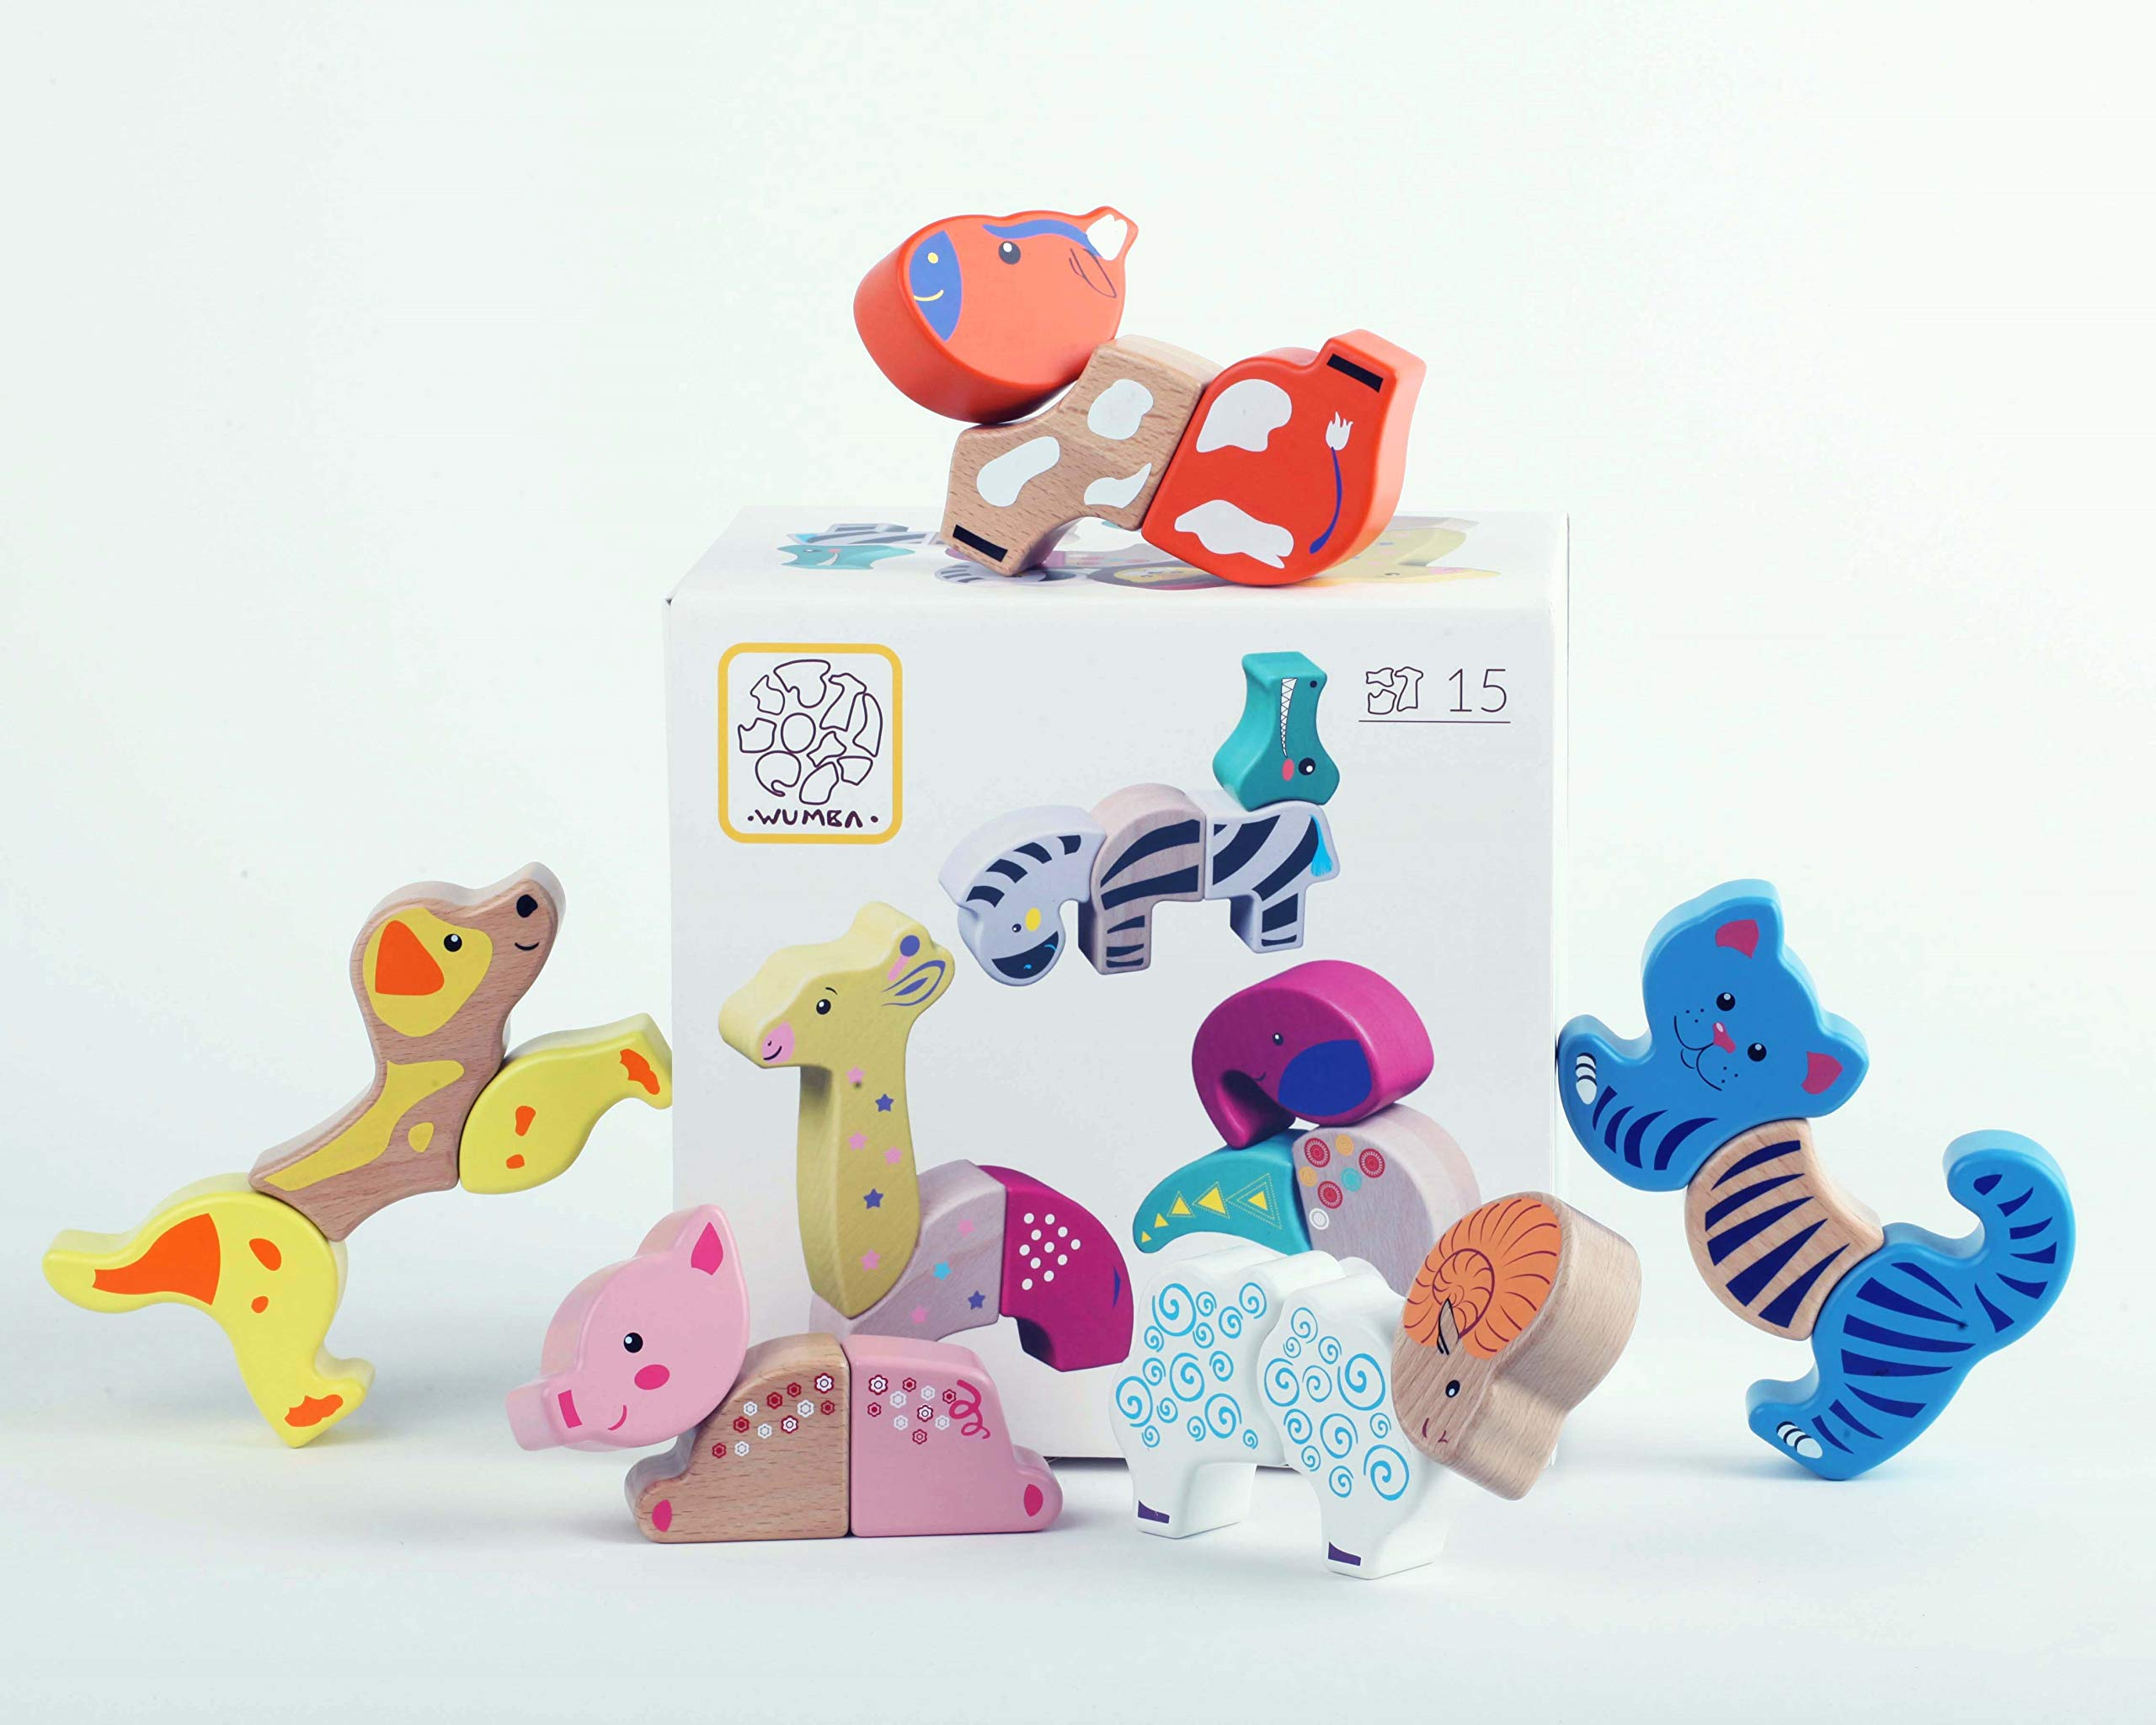 WUMBA - Unique Developing Travel Magnetic Toys for Children of All Ages. Wooden Toy Set (Cat Dog Cow Sheep Pig Toy Set)